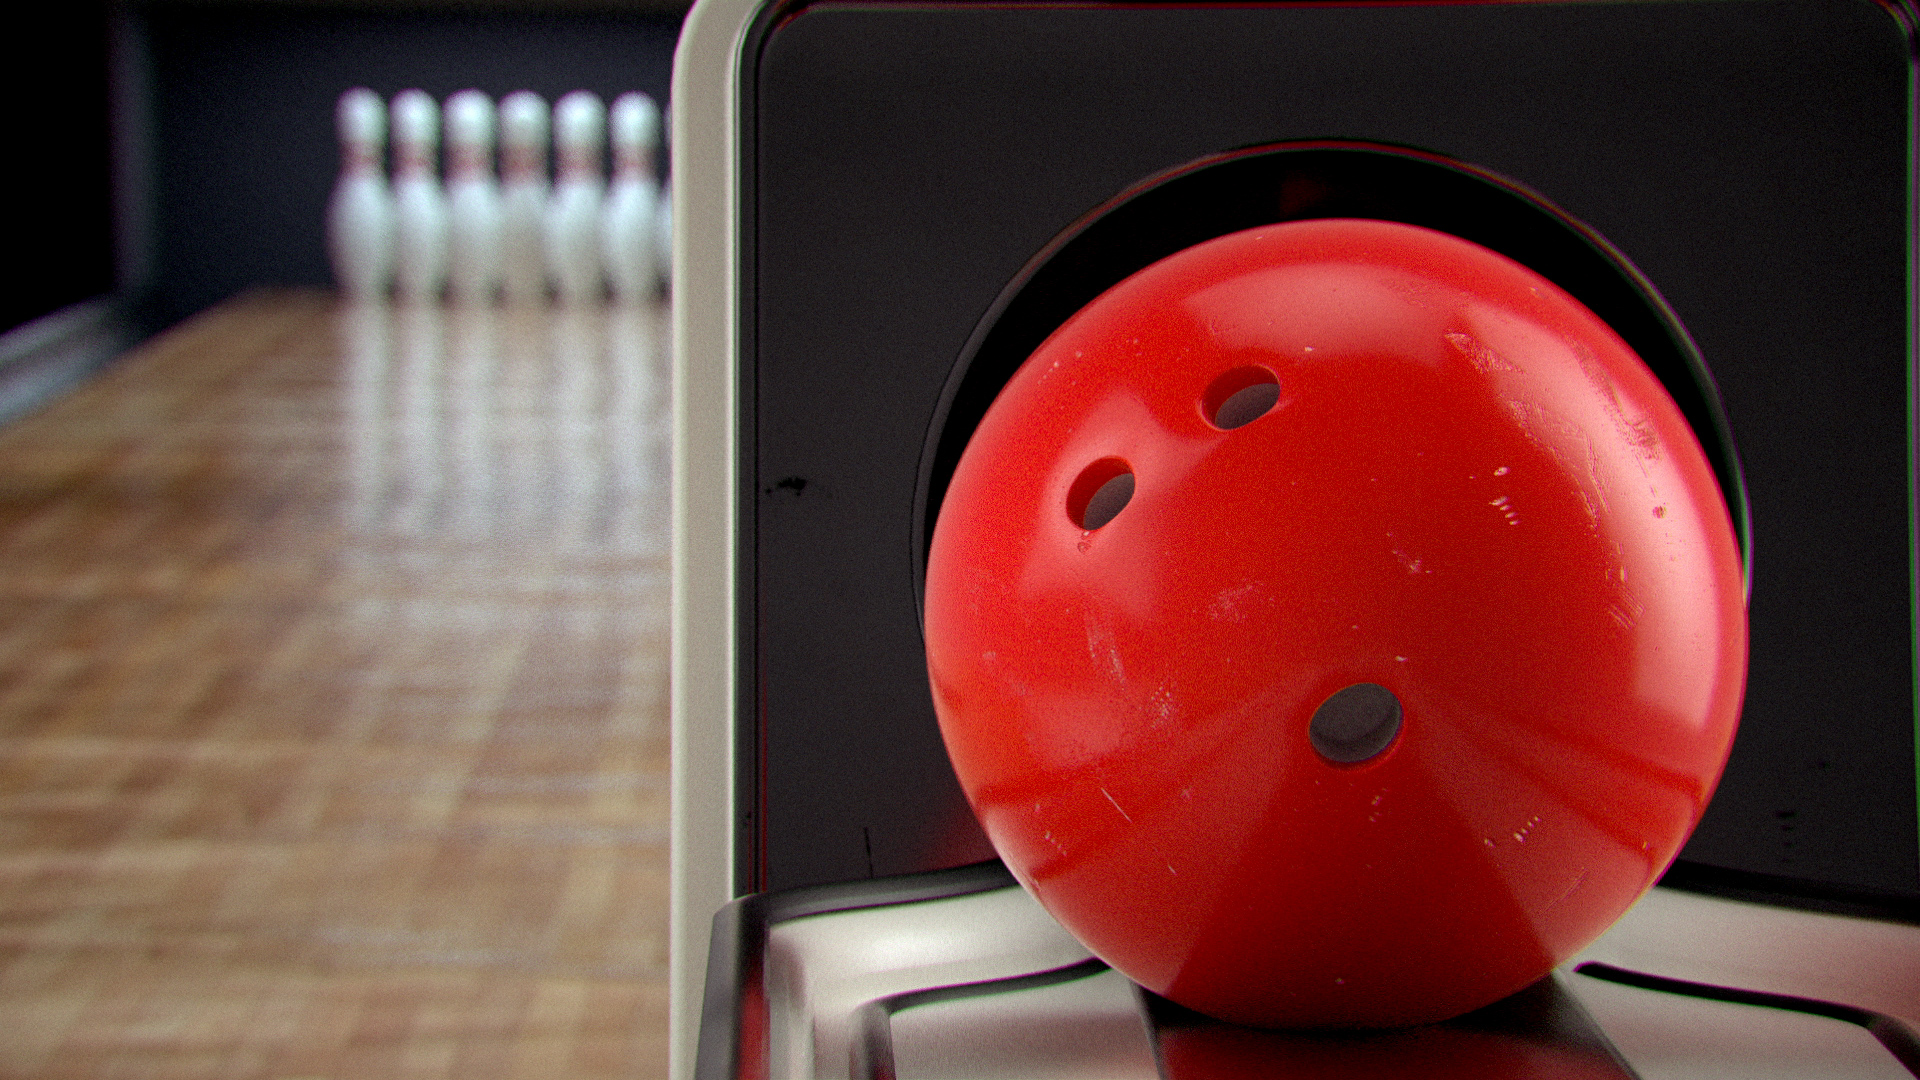 MACHINES-01-BOWLING-V2.1479.Image fixe008